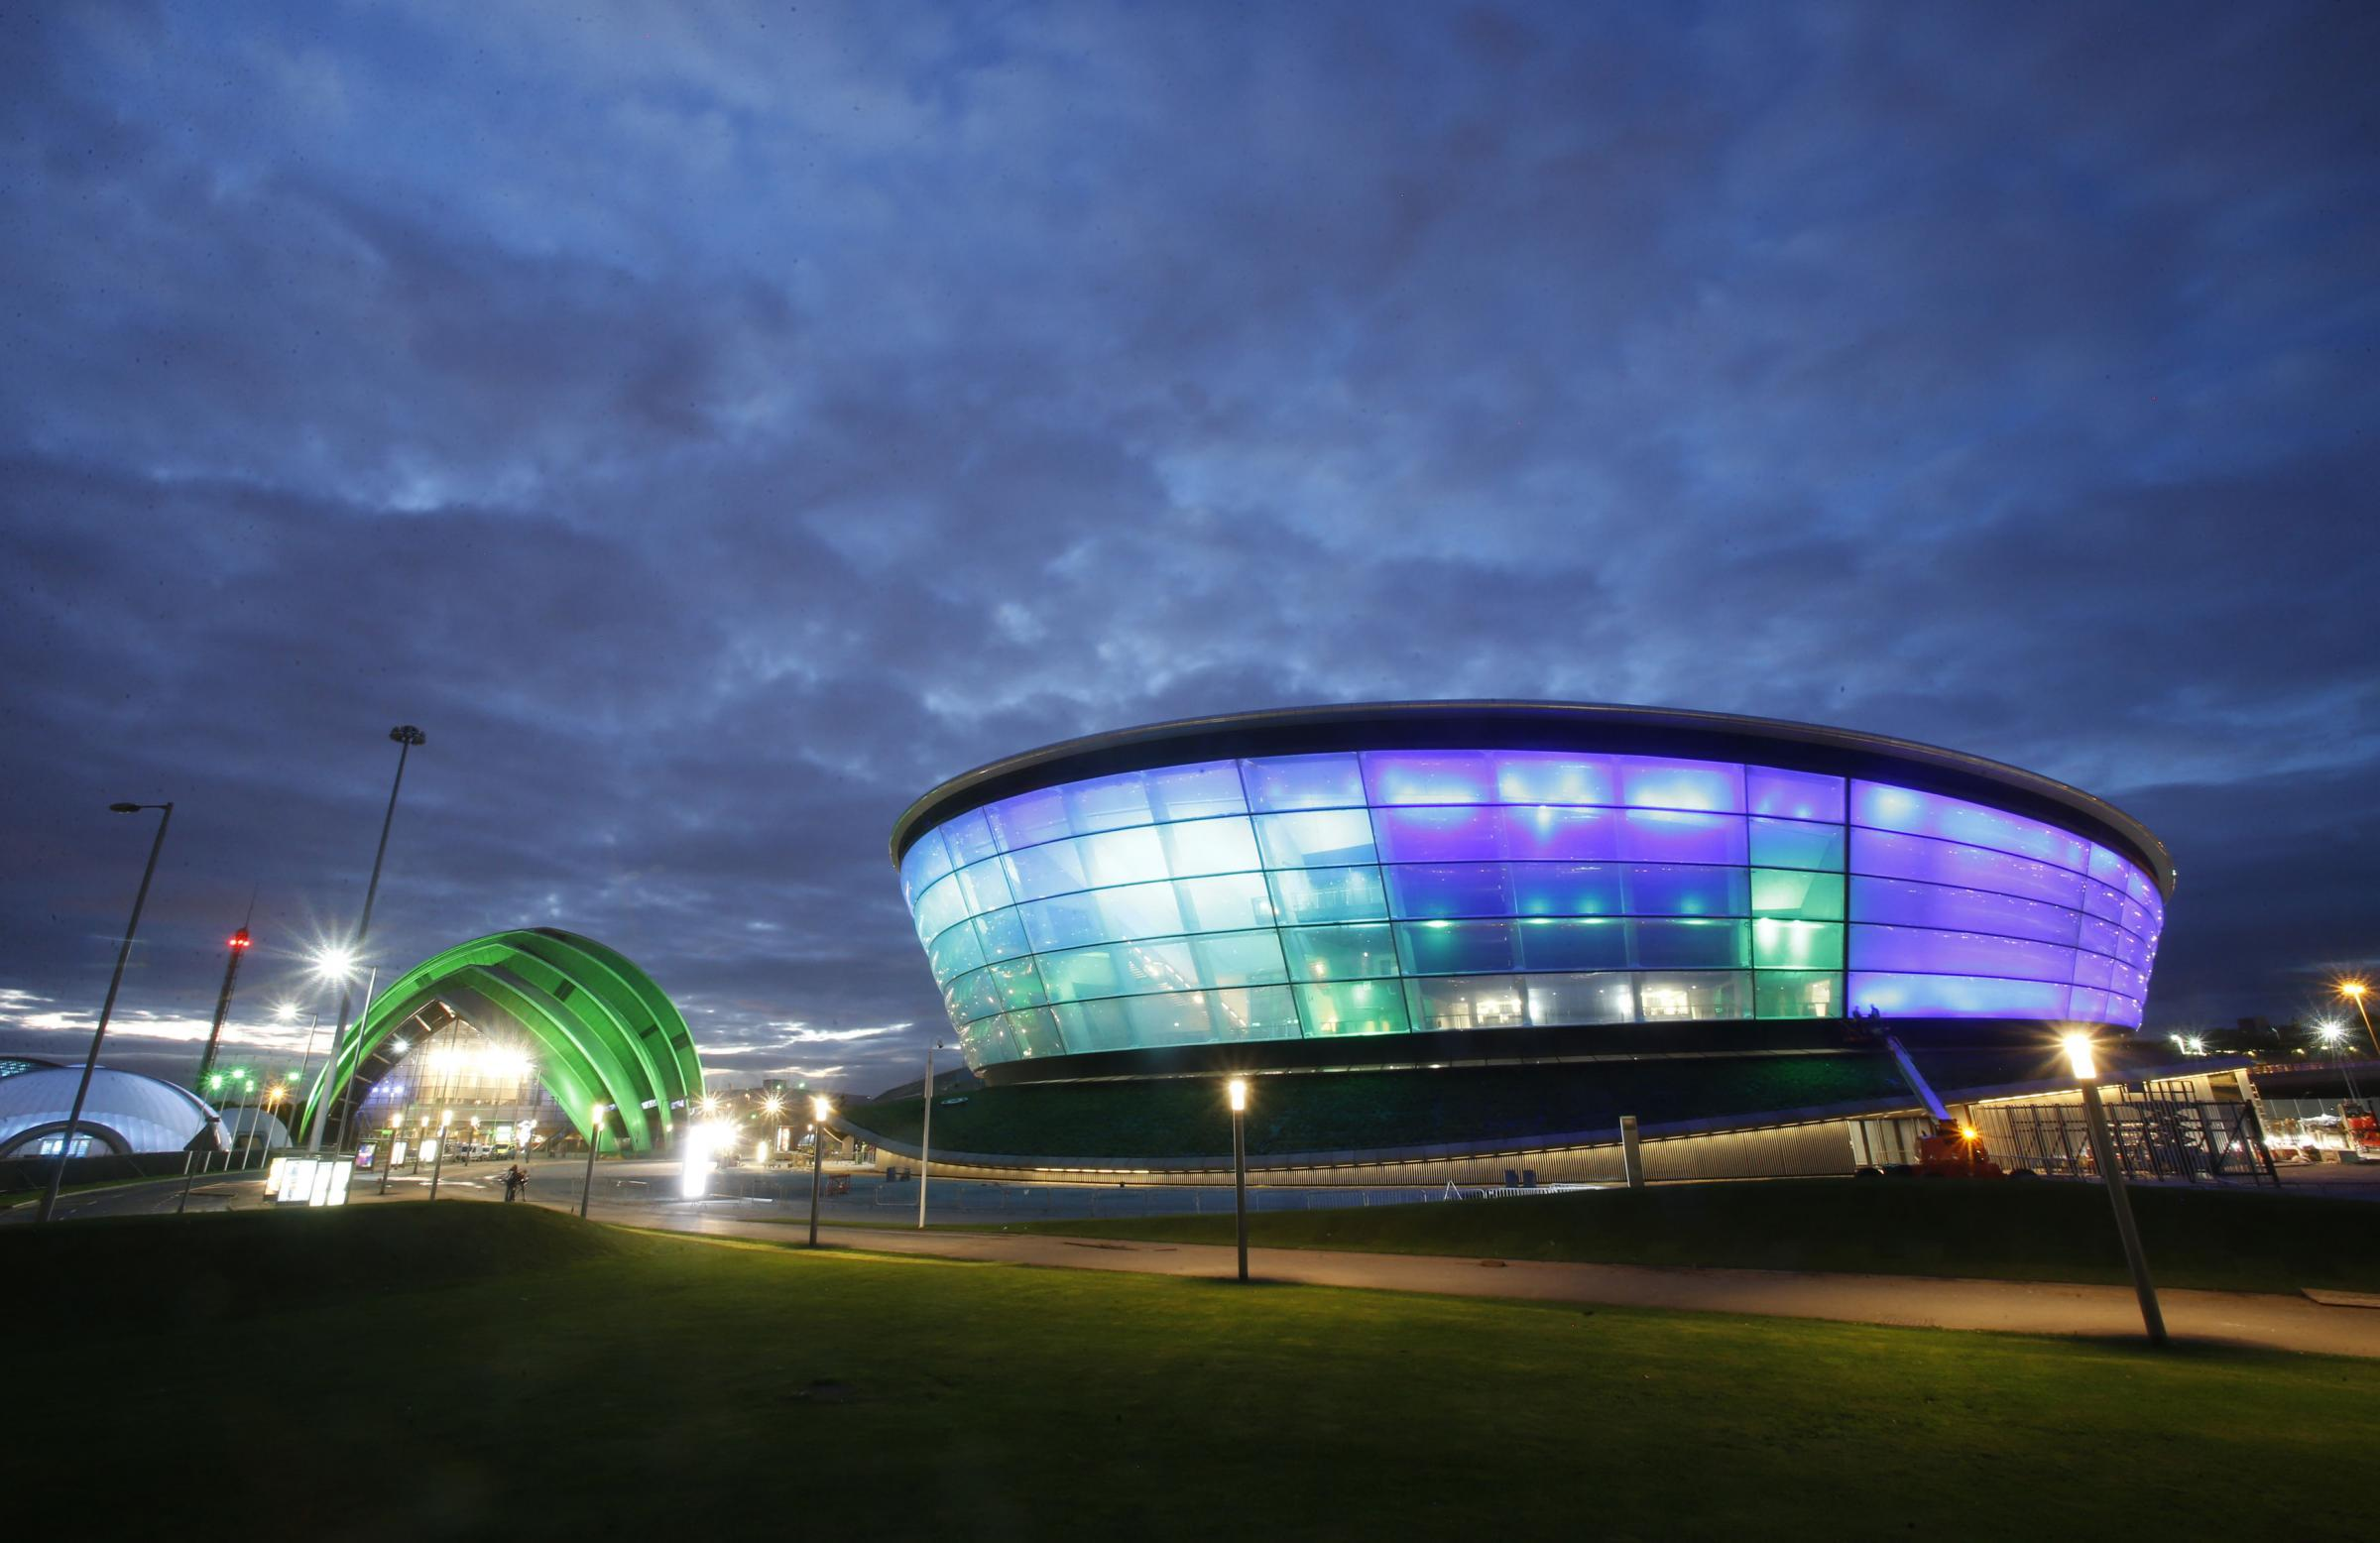 File photo dated 25/09/2013 of The SSE Hydro. PRESS ASSOCIATION Photo. Issue date: Wednesday July 9, 2014. The other centres on the campus are the SECC Exhibition Halls, Clyde Auditorium and The Hydro. See PA story SPORT Commonwealth Venues. Photo credit